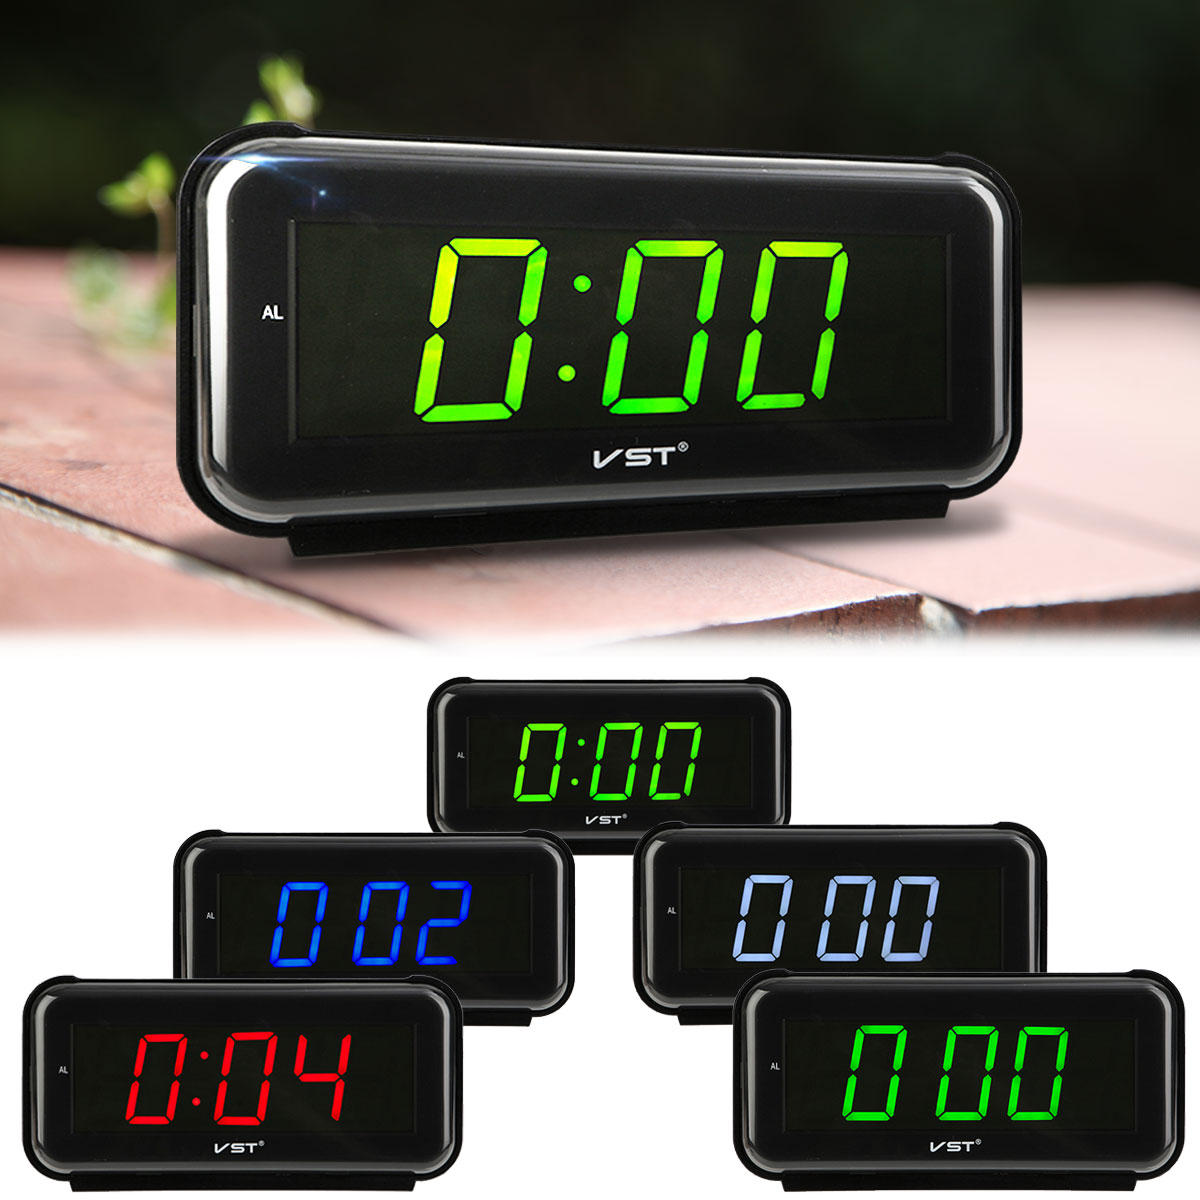 Digital Clock For Sale Vst 806 Led Alarm Clock Timer 1 8 Inch Display 24 Hour System Fashion Multi Function